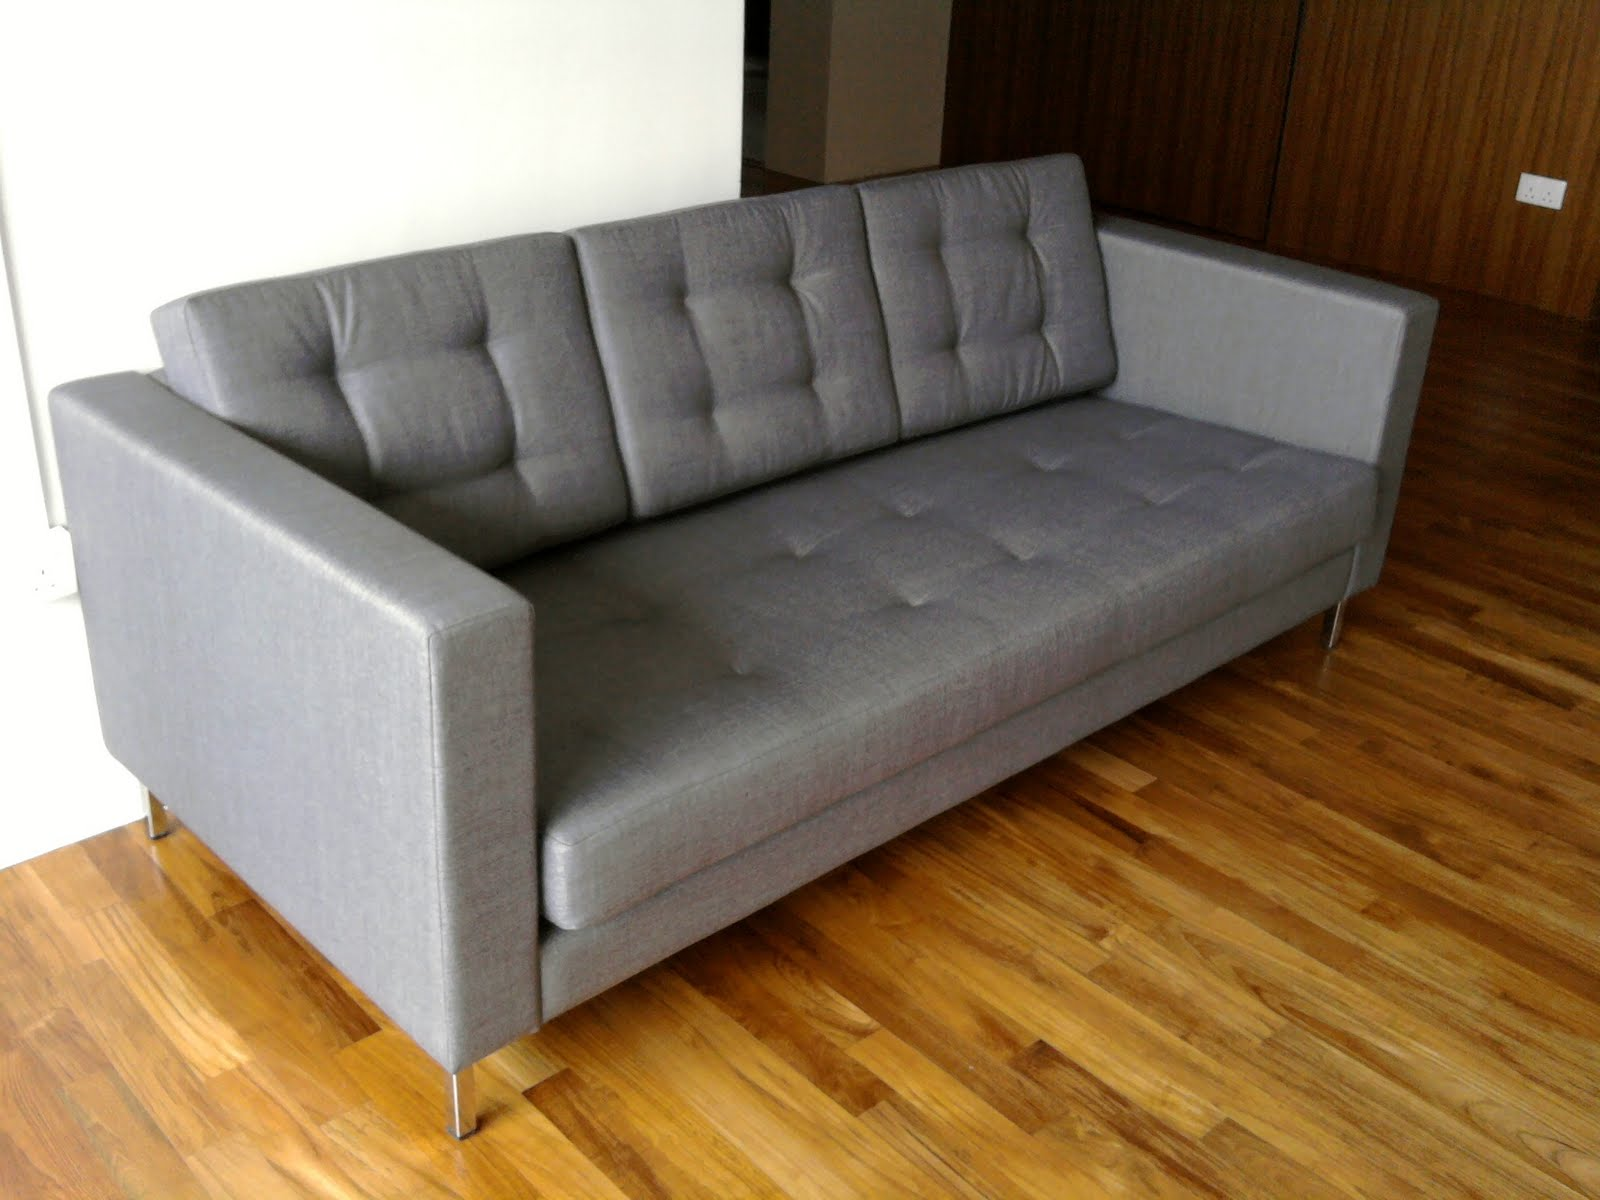 Semi Circle Sofa For Bay Window Mart Boise Hours Kia Meng Trading Products And Services